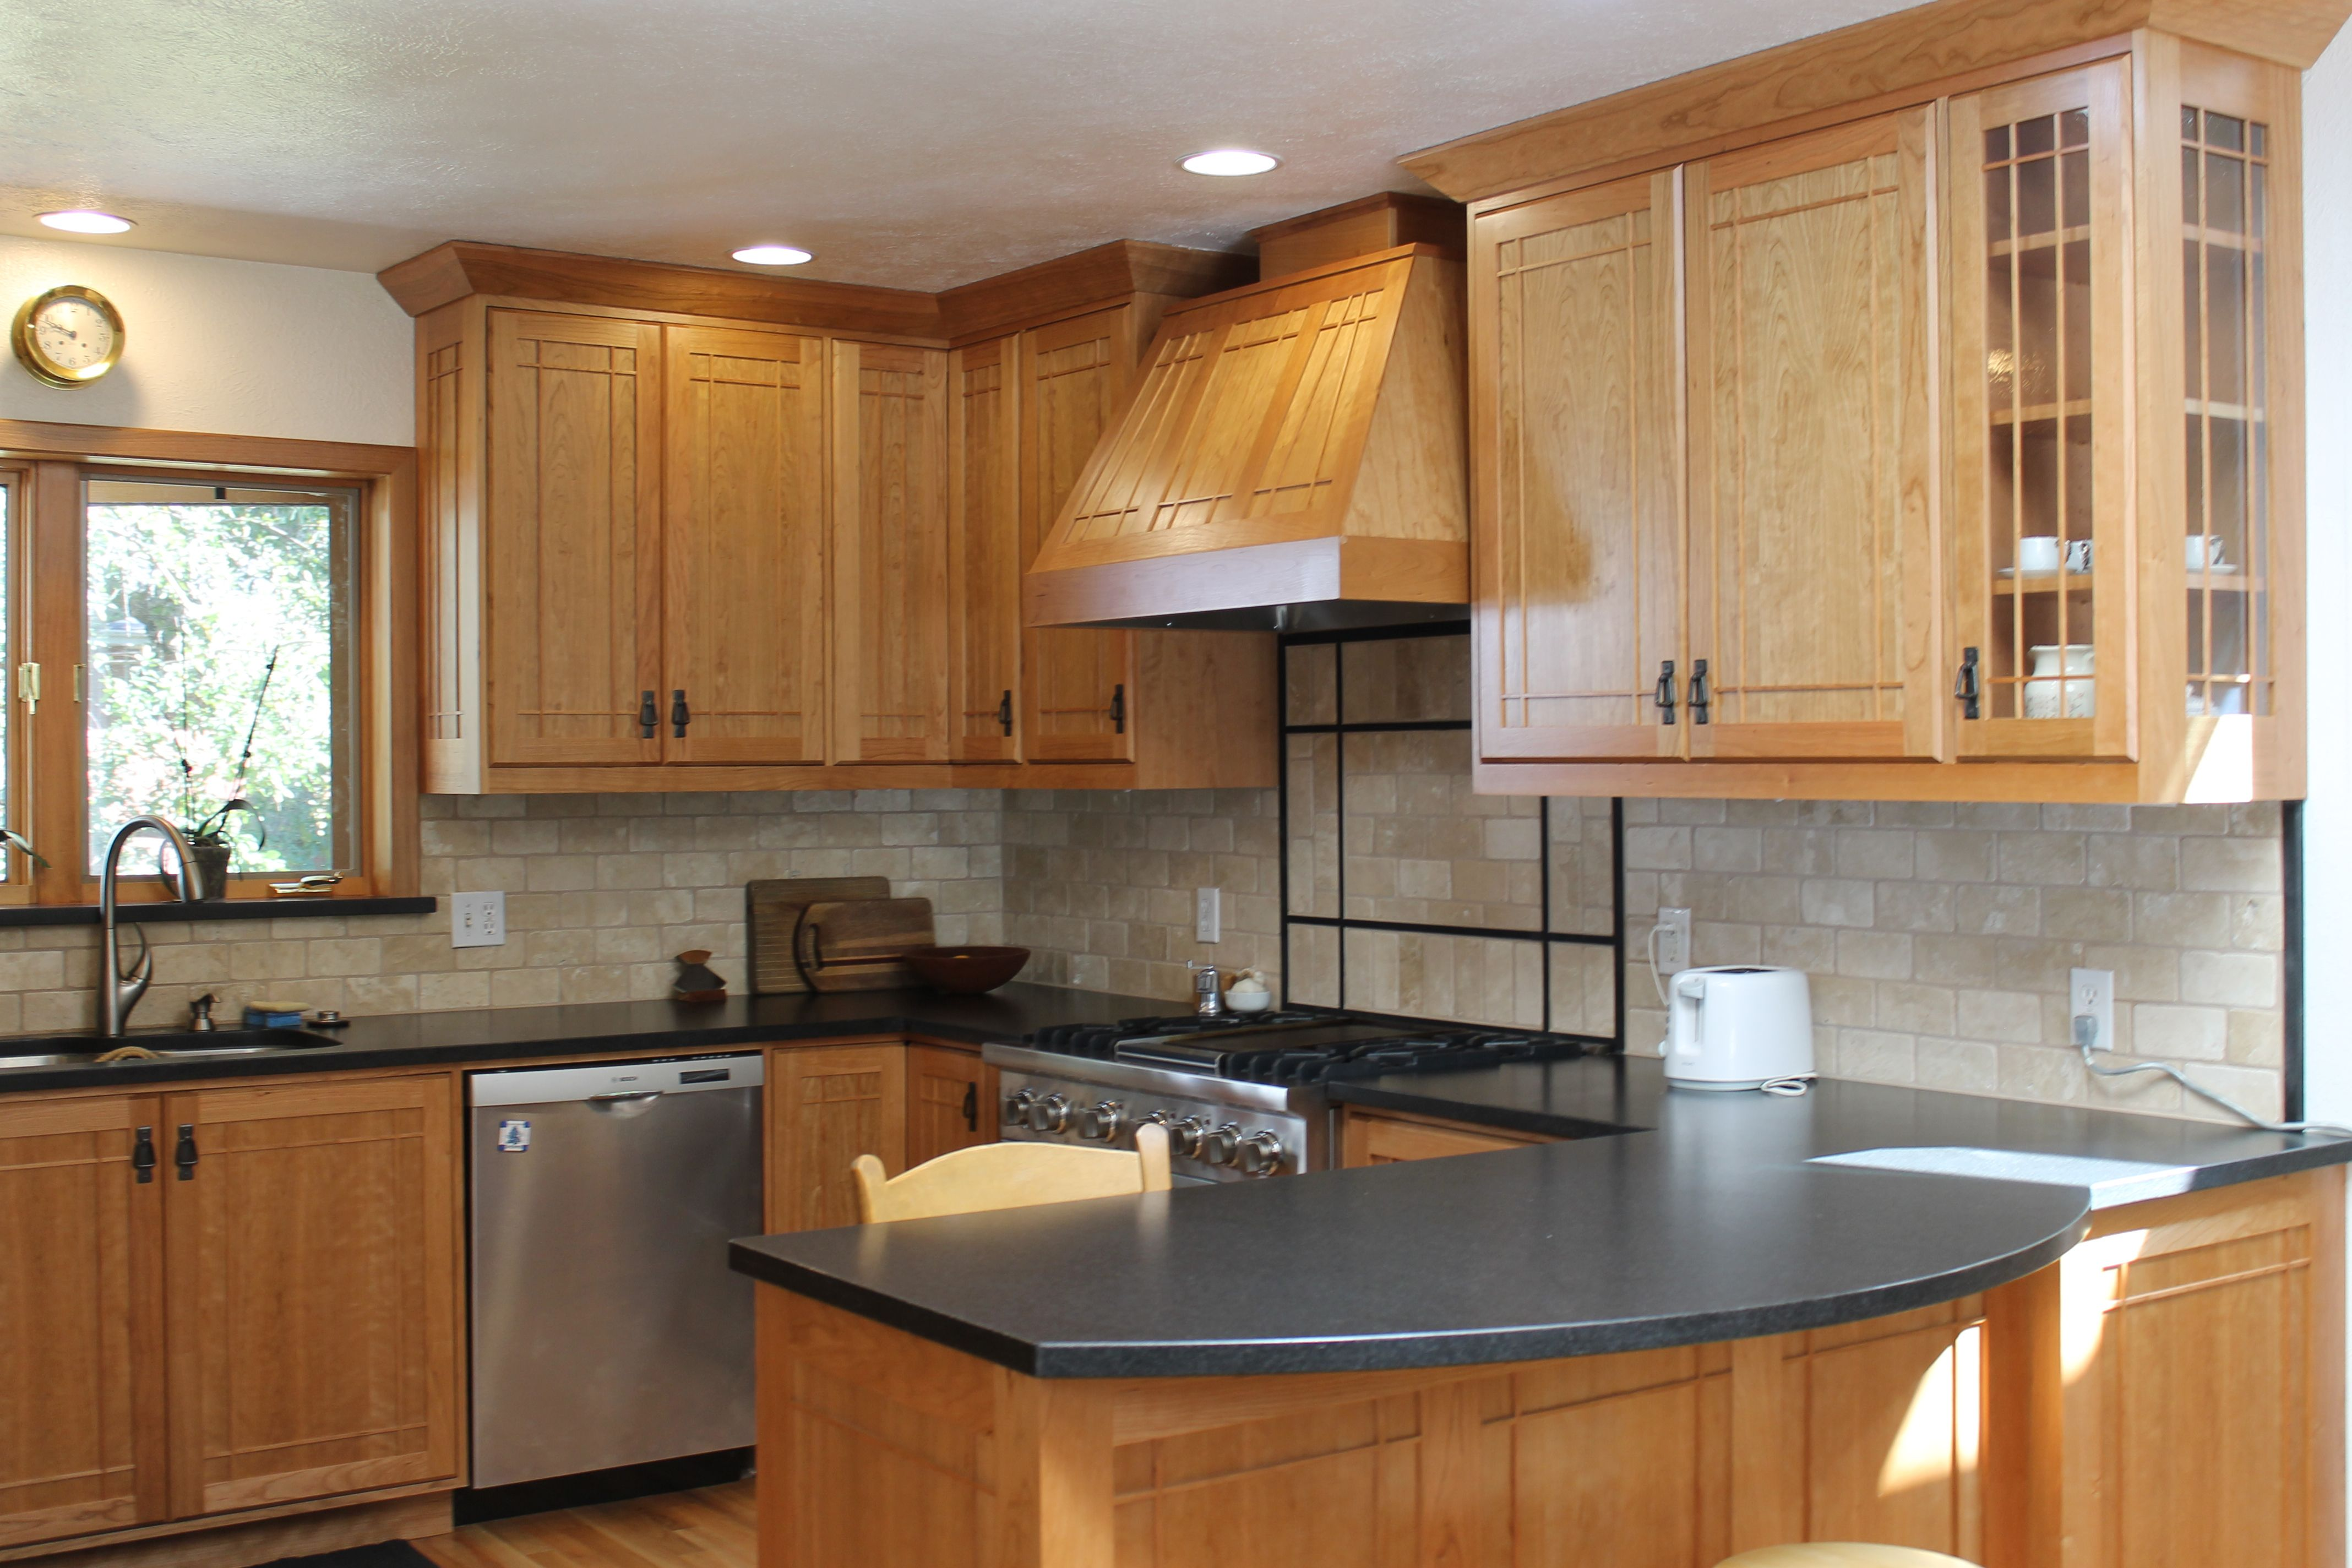 light kitchen cabinets Wood kitchen cabinets